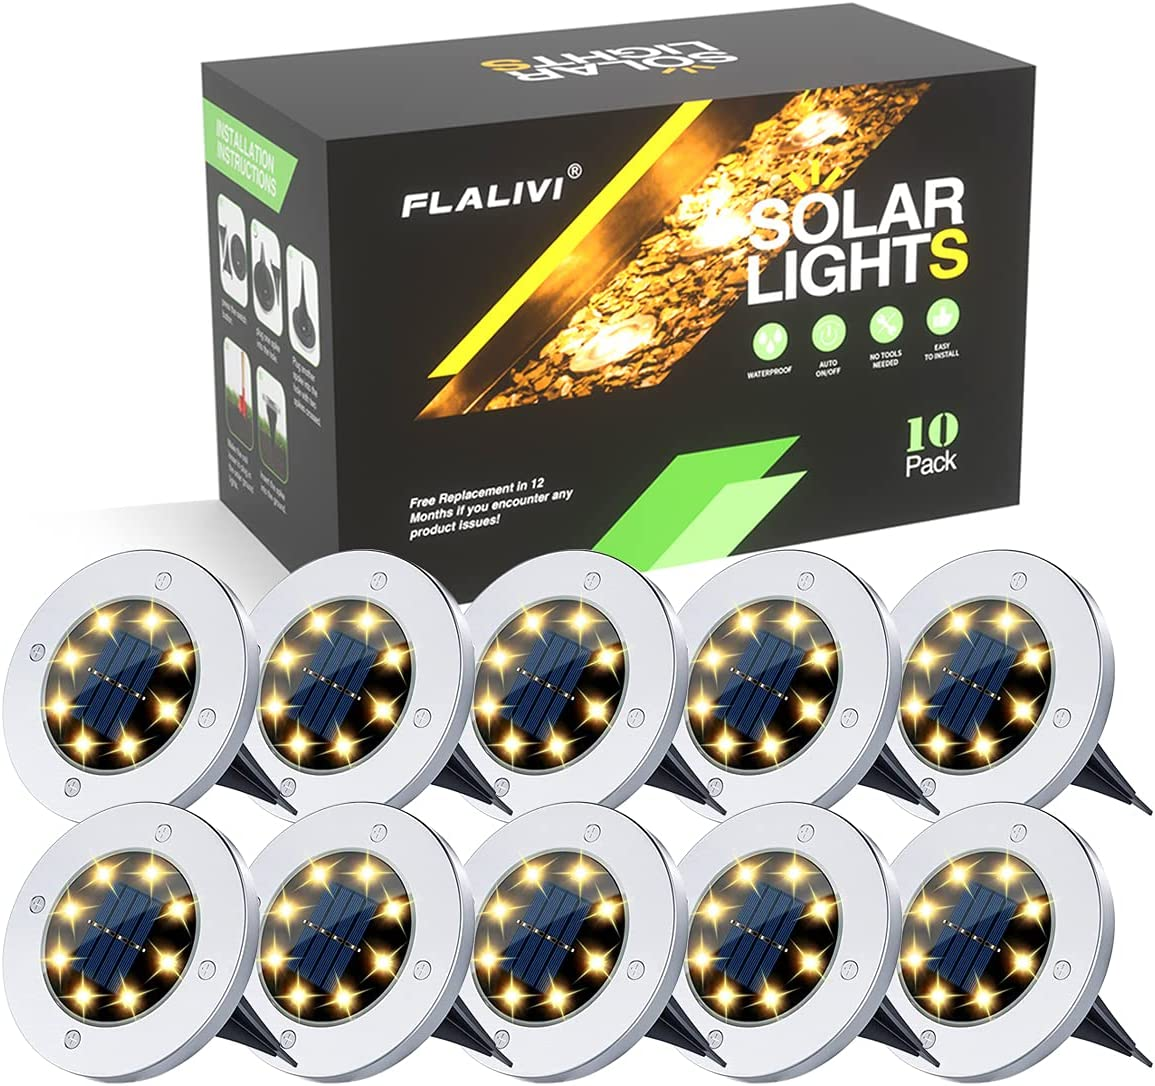 Flalivi Solar Ground Lights, 10 Pack 8 LED Solar Lights Outdoor Landscape Lighting Waterproof for Garden Yard Patio Disk Pathway Lawn Driveway Walkway- Warm White